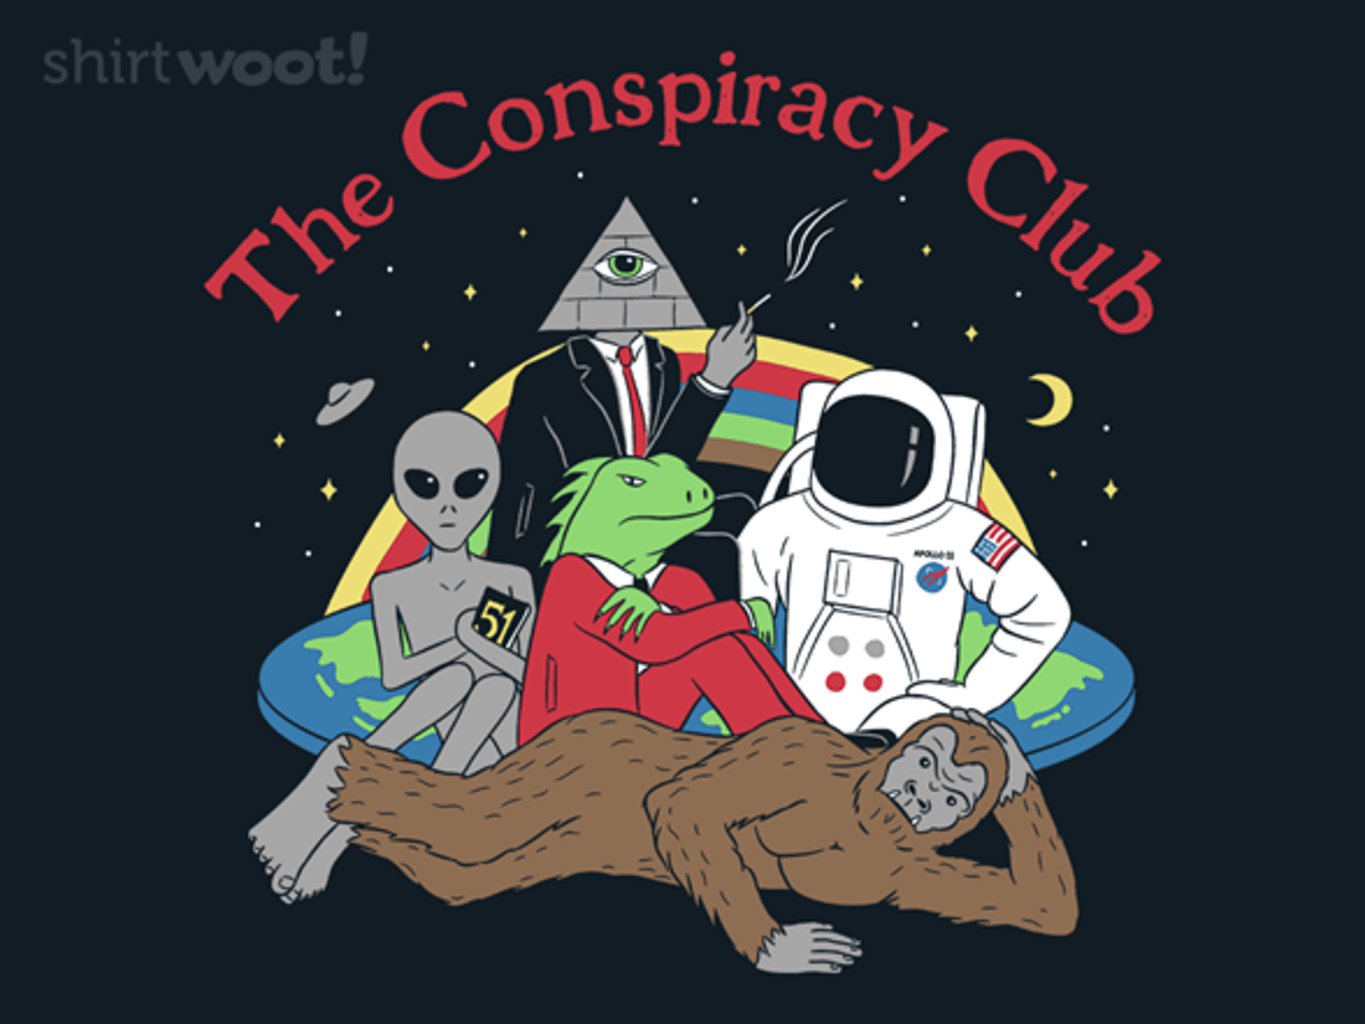 Woot!: The Conspiracy Club